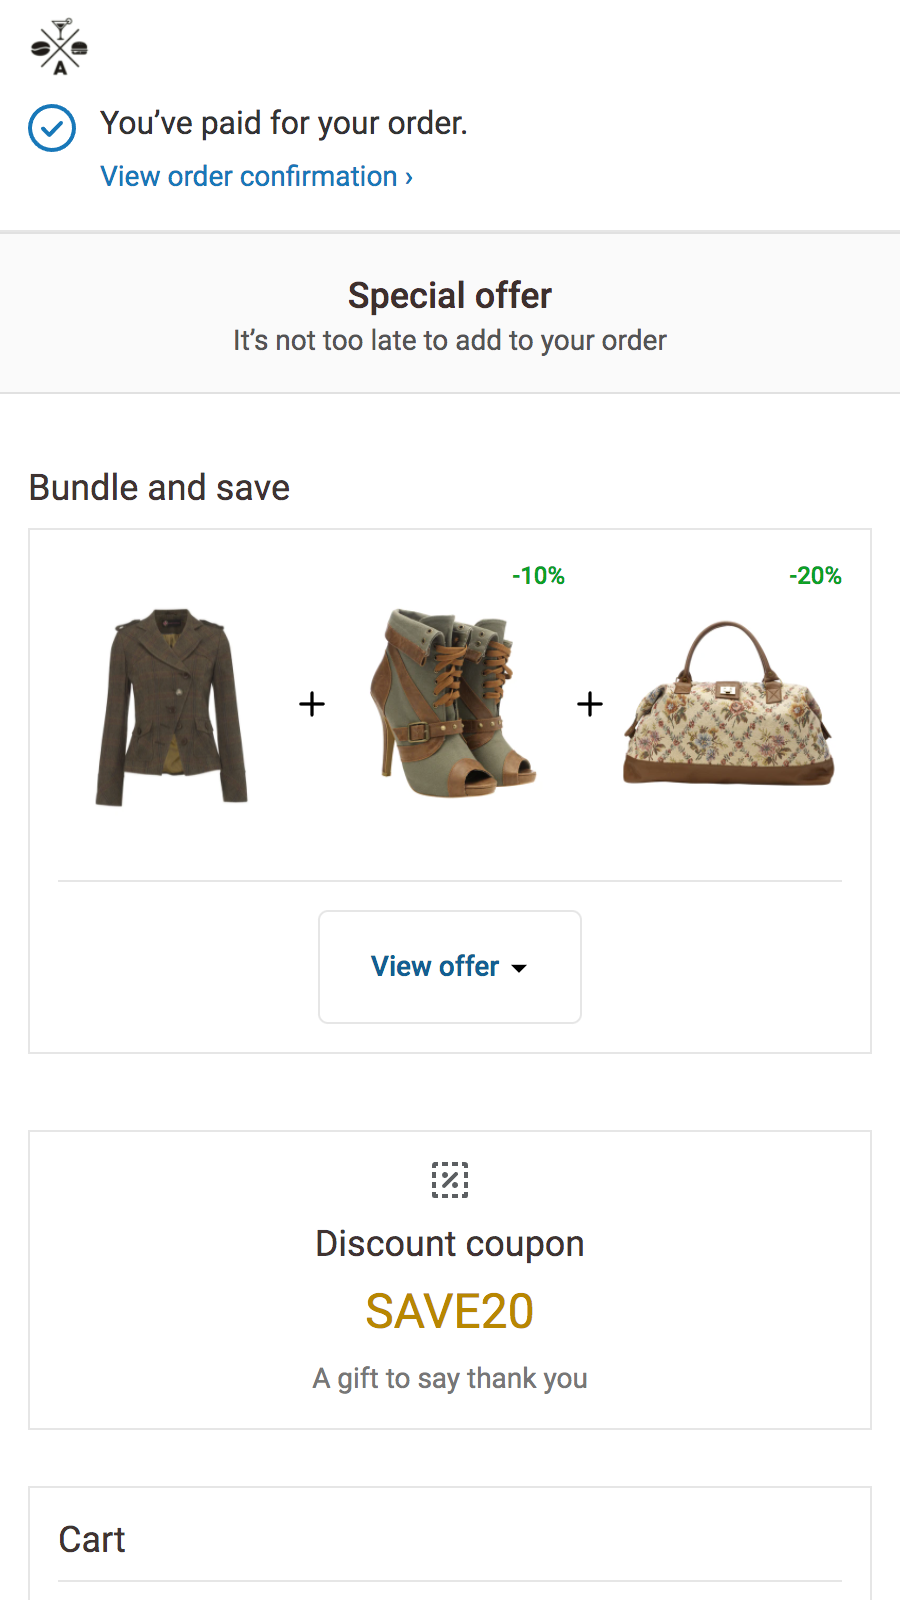 Checkout upsell offer, product with variant selector